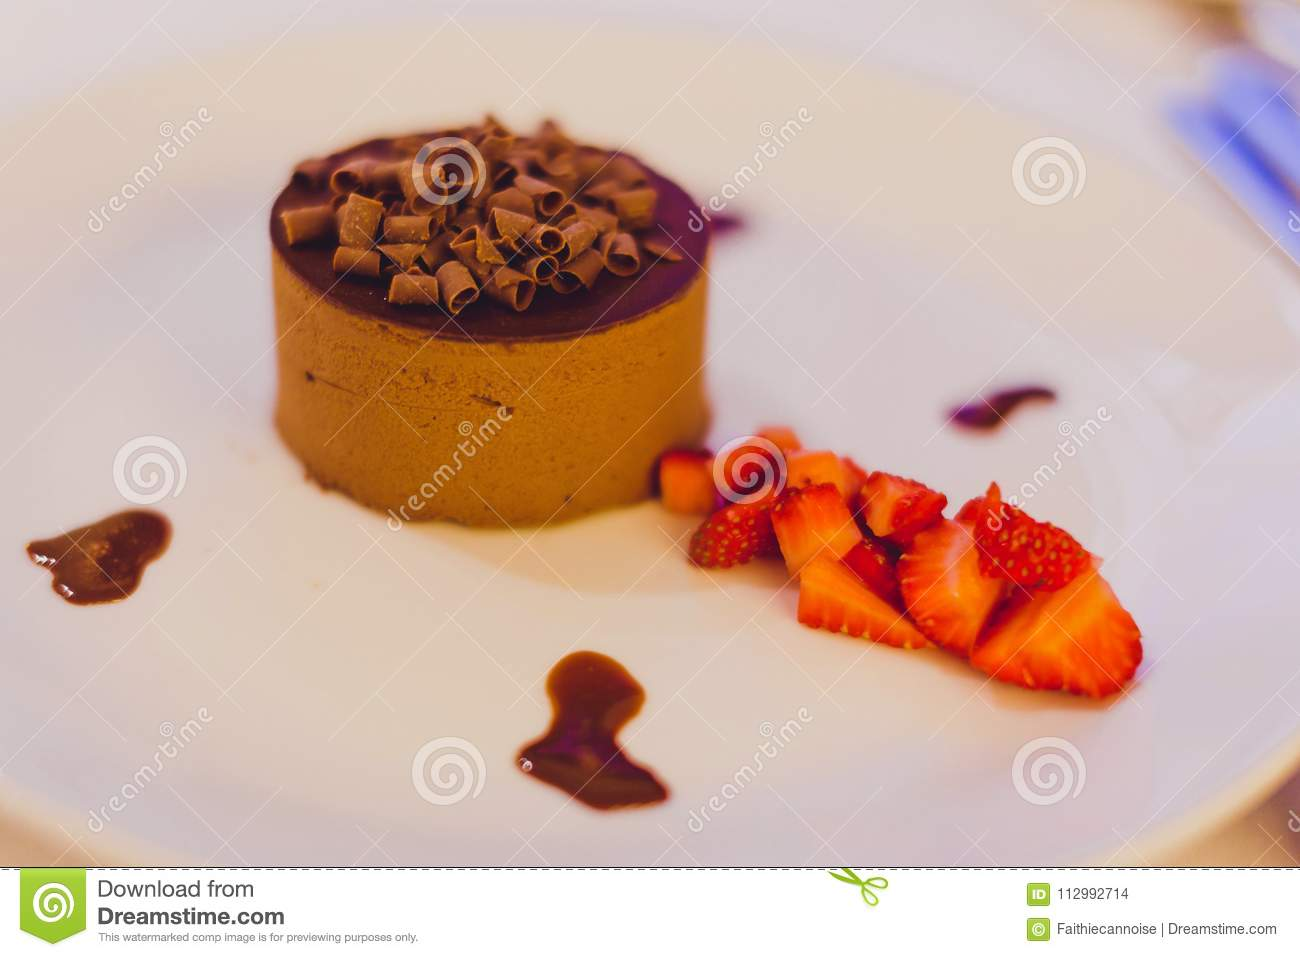 Chocolate cake with strwberries